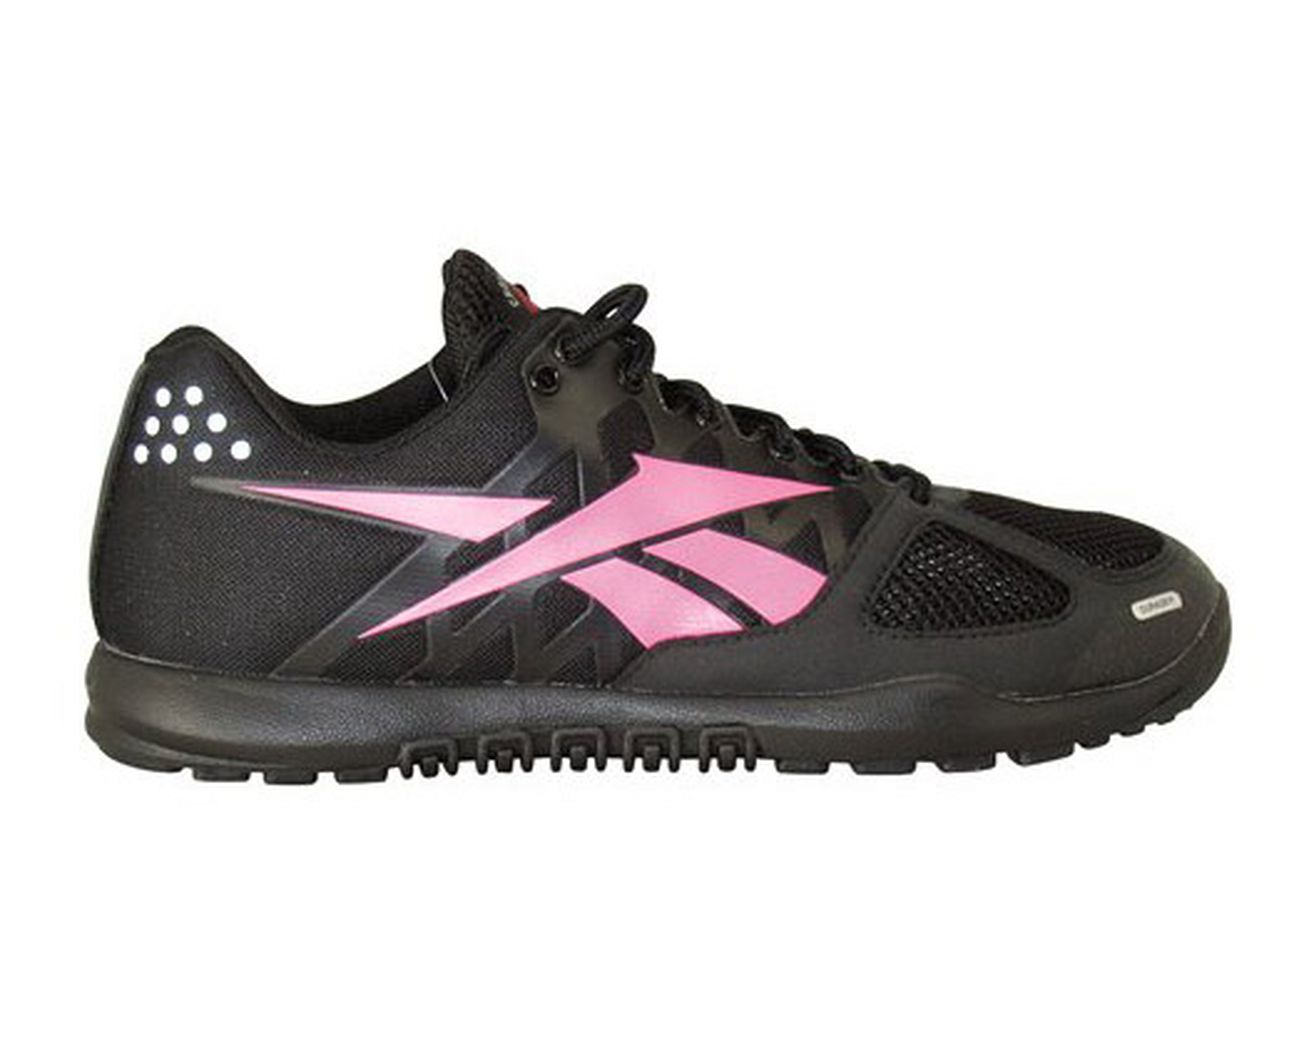 Reebok CrossFit Nano 2.0 Women's Training Shoes Pink/black